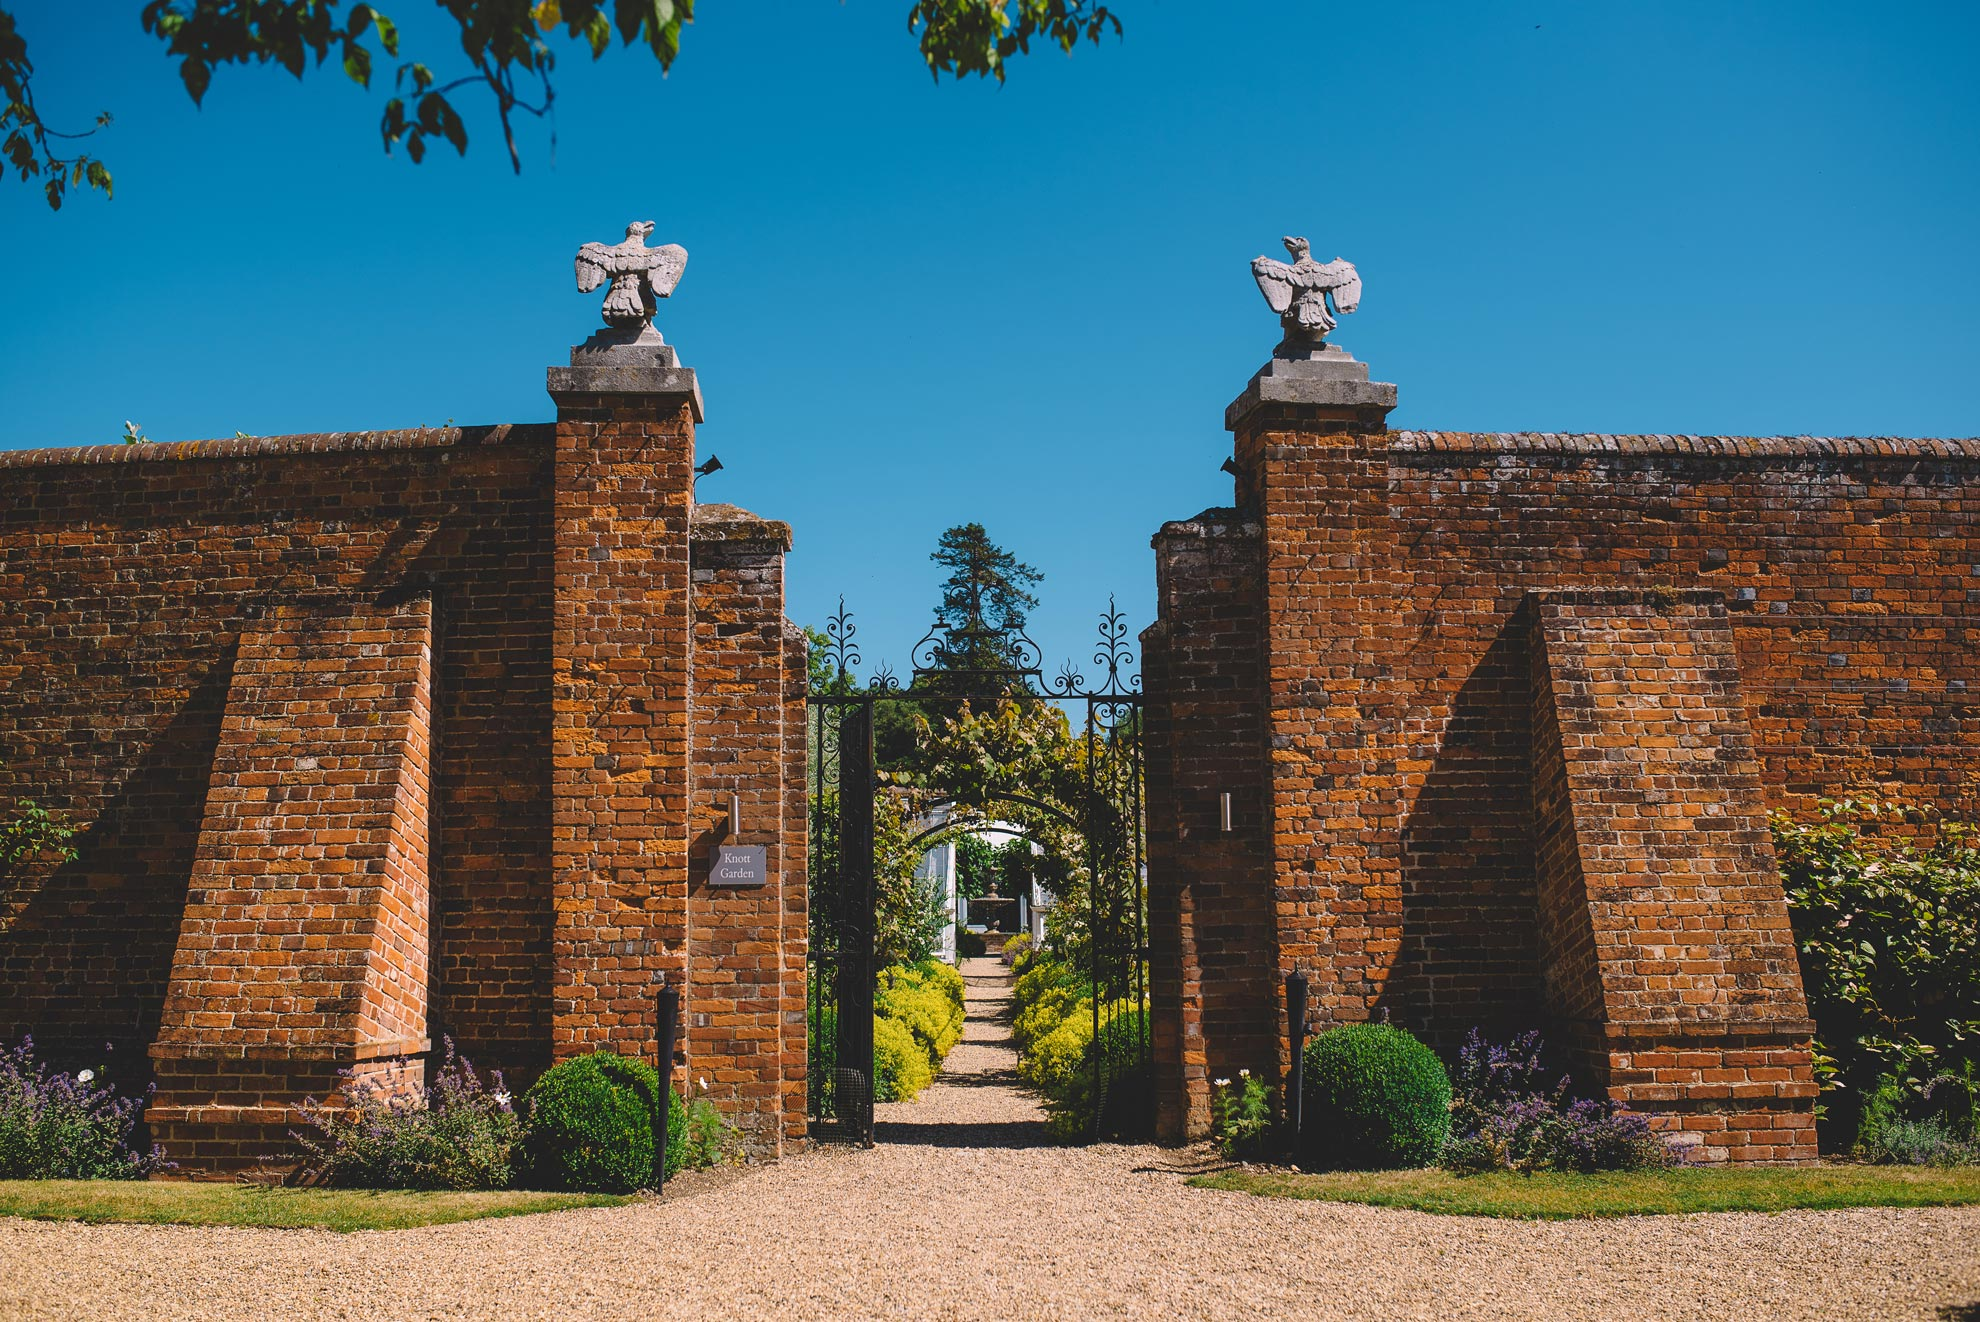 The gardens at this Essex wedding venue are perfect for photos - beautiful outdoor wedding venue